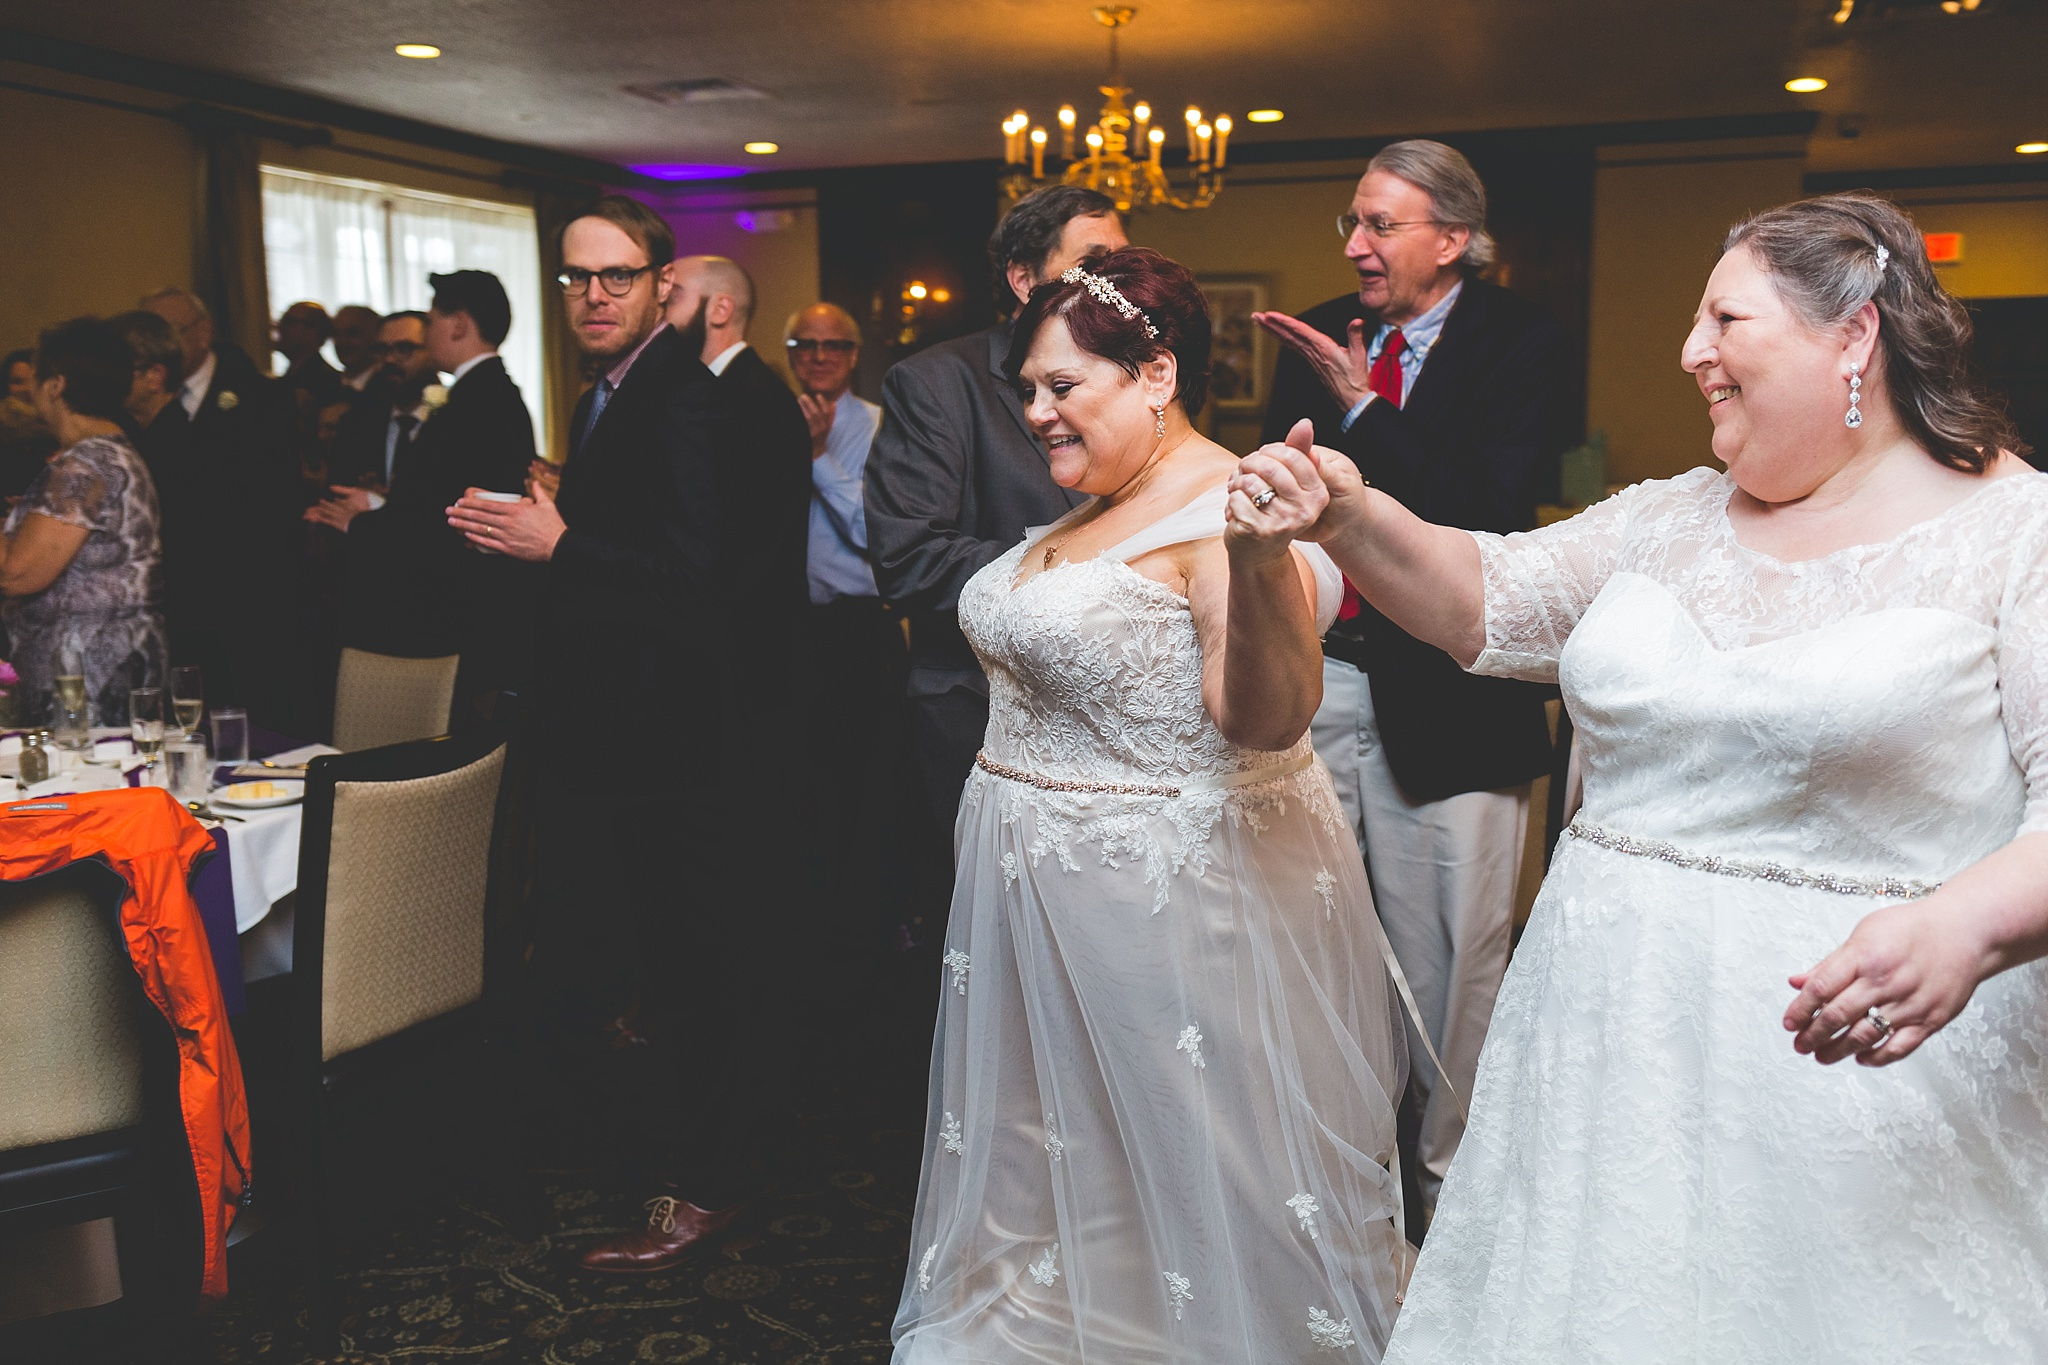 Albany_Wedding_Photographer_8798.jpg